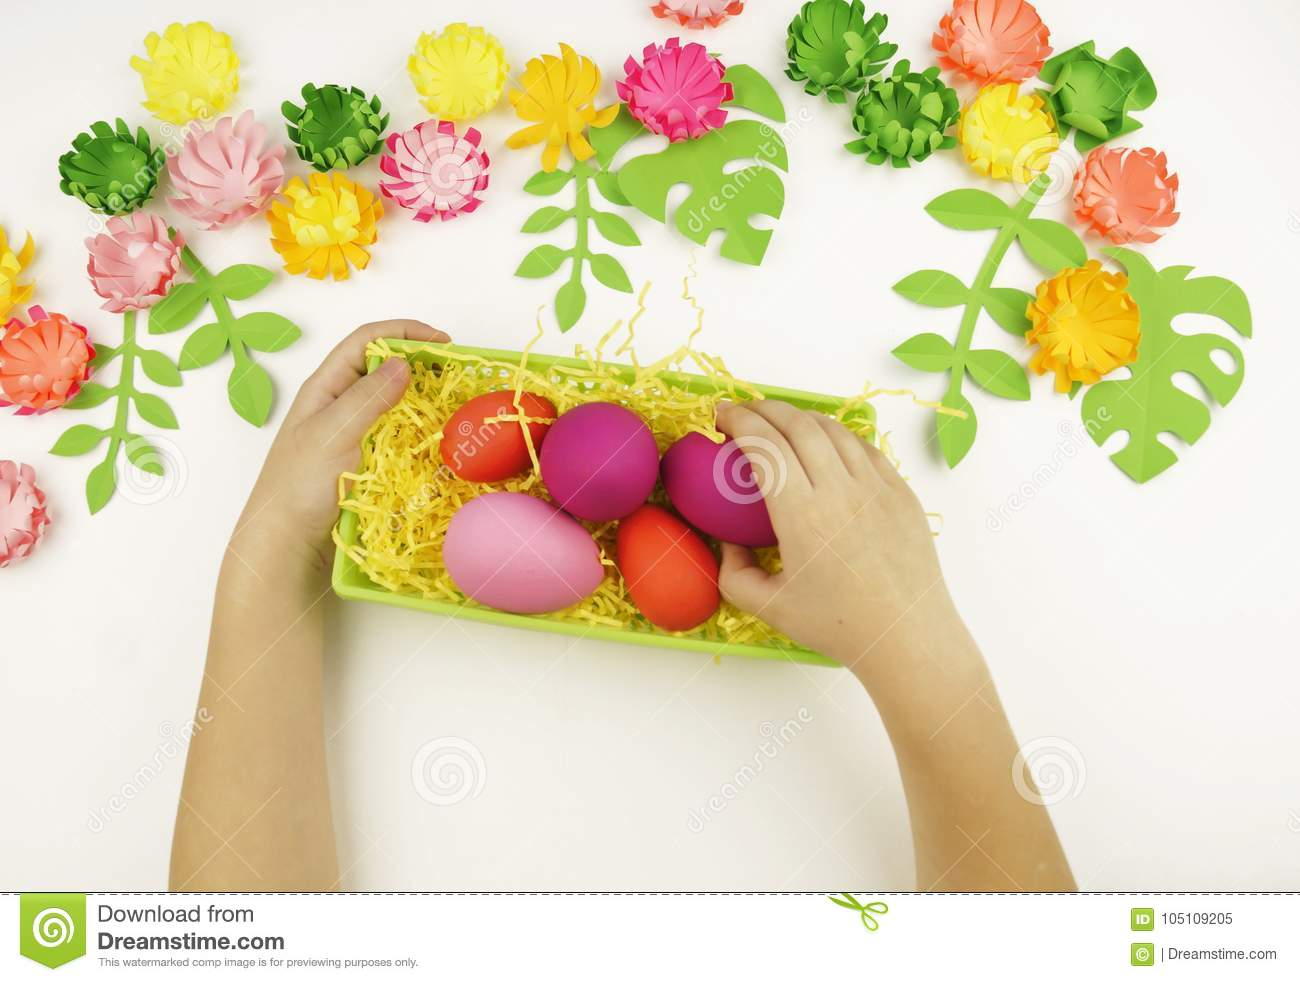 Childrens hands put easter eggs in a green basket easter childrens hands put easter eggs in a green basket easter preparation for the easter partyper flowers and leaves mightylinksfo